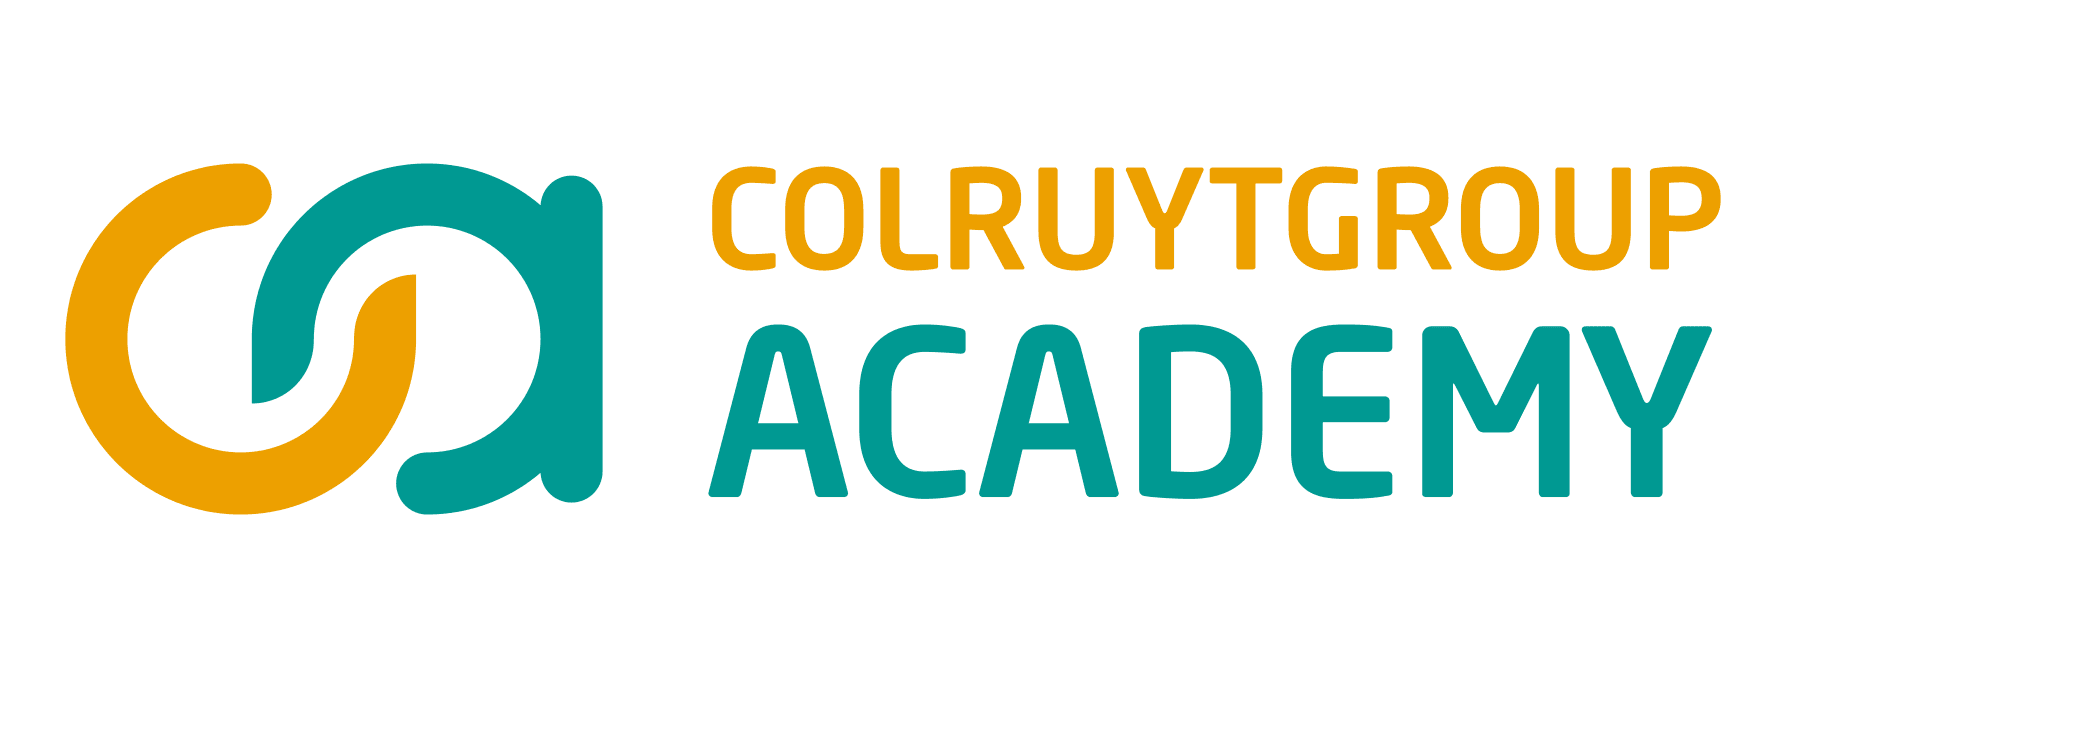 Colruyt Group Academy